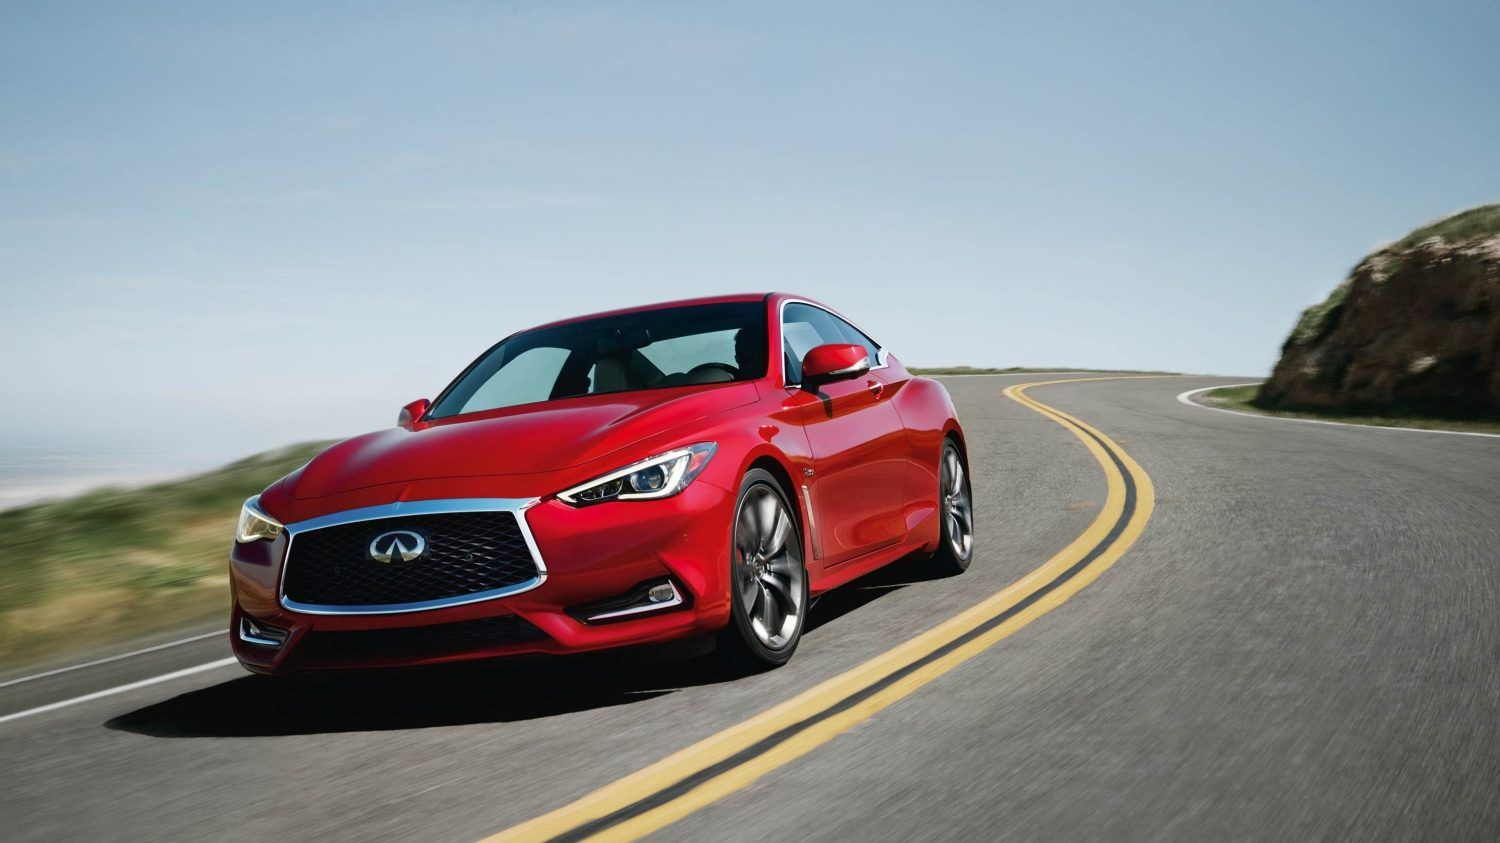 2018 Infiniti Q60 Coupe Digital Steering And Suspension Infiniti Infiniti Usa Coupe